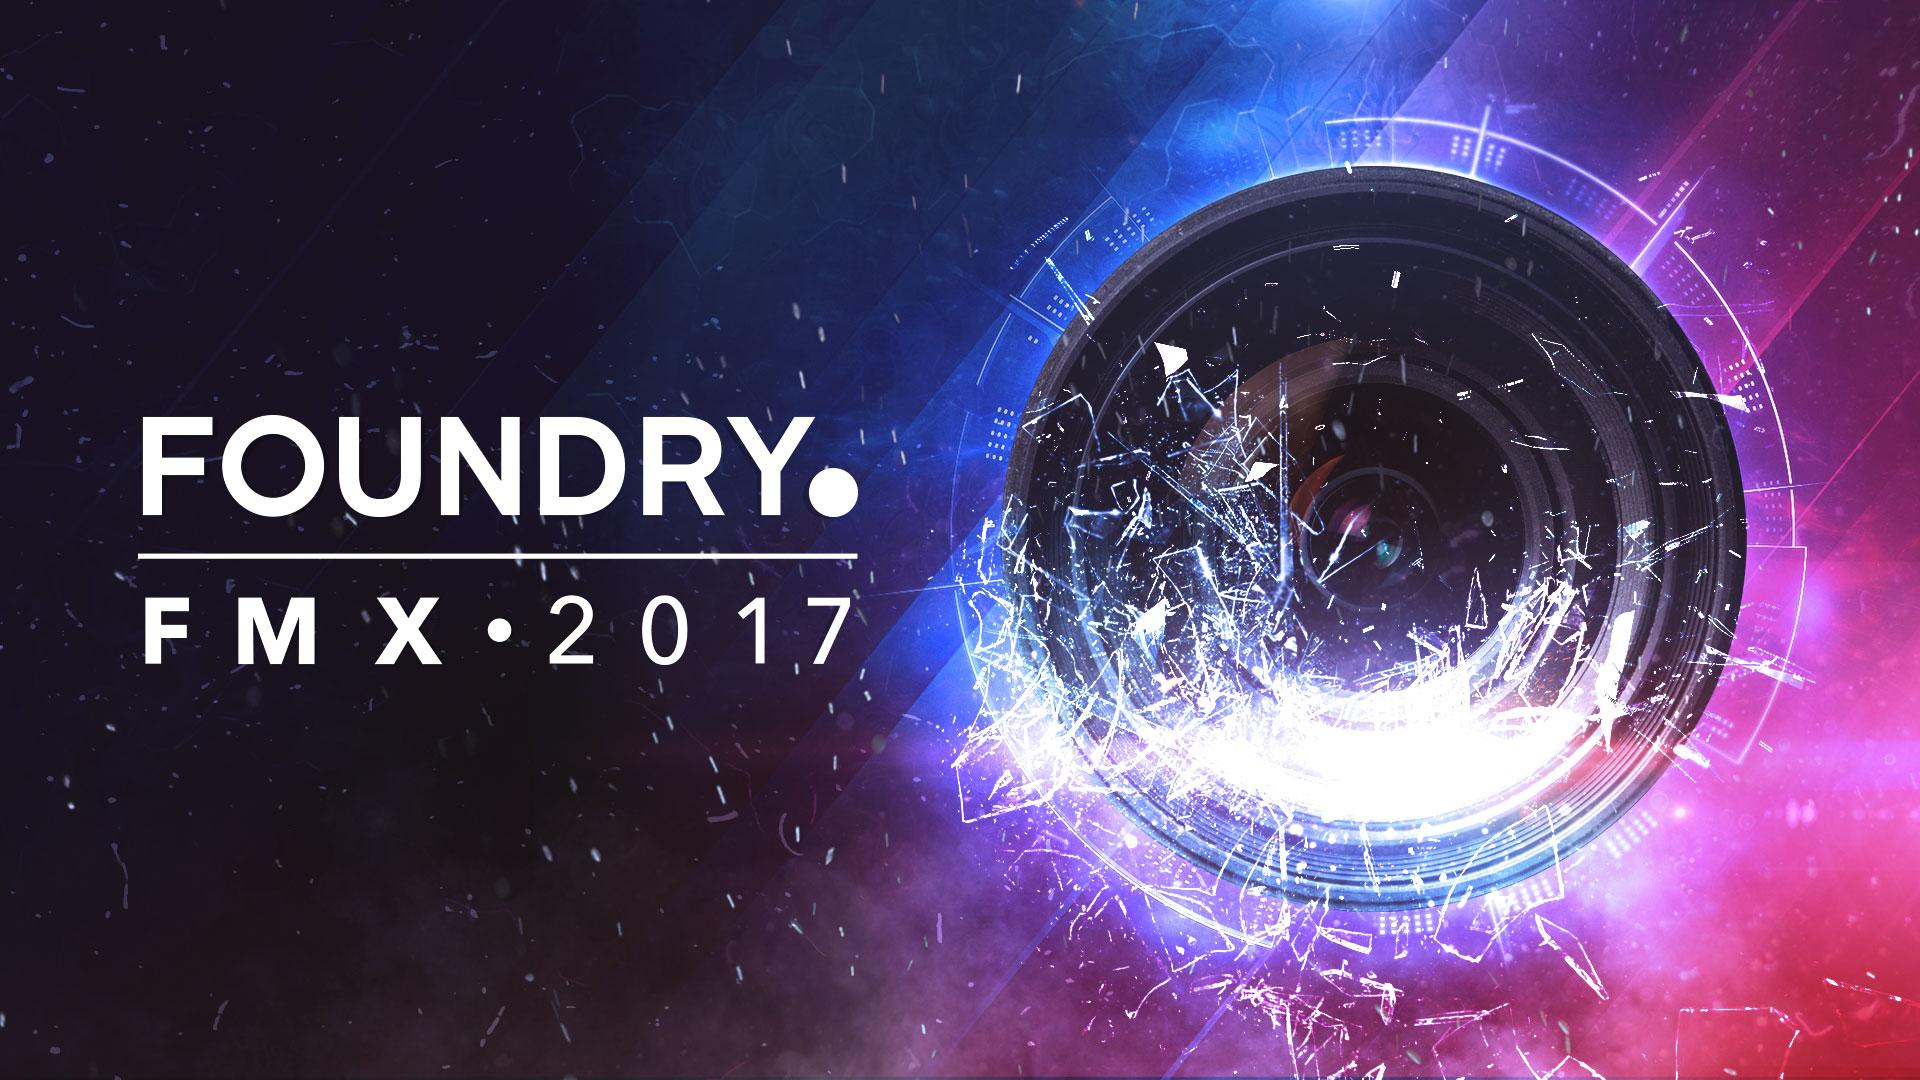 Foundry at FMX 2017